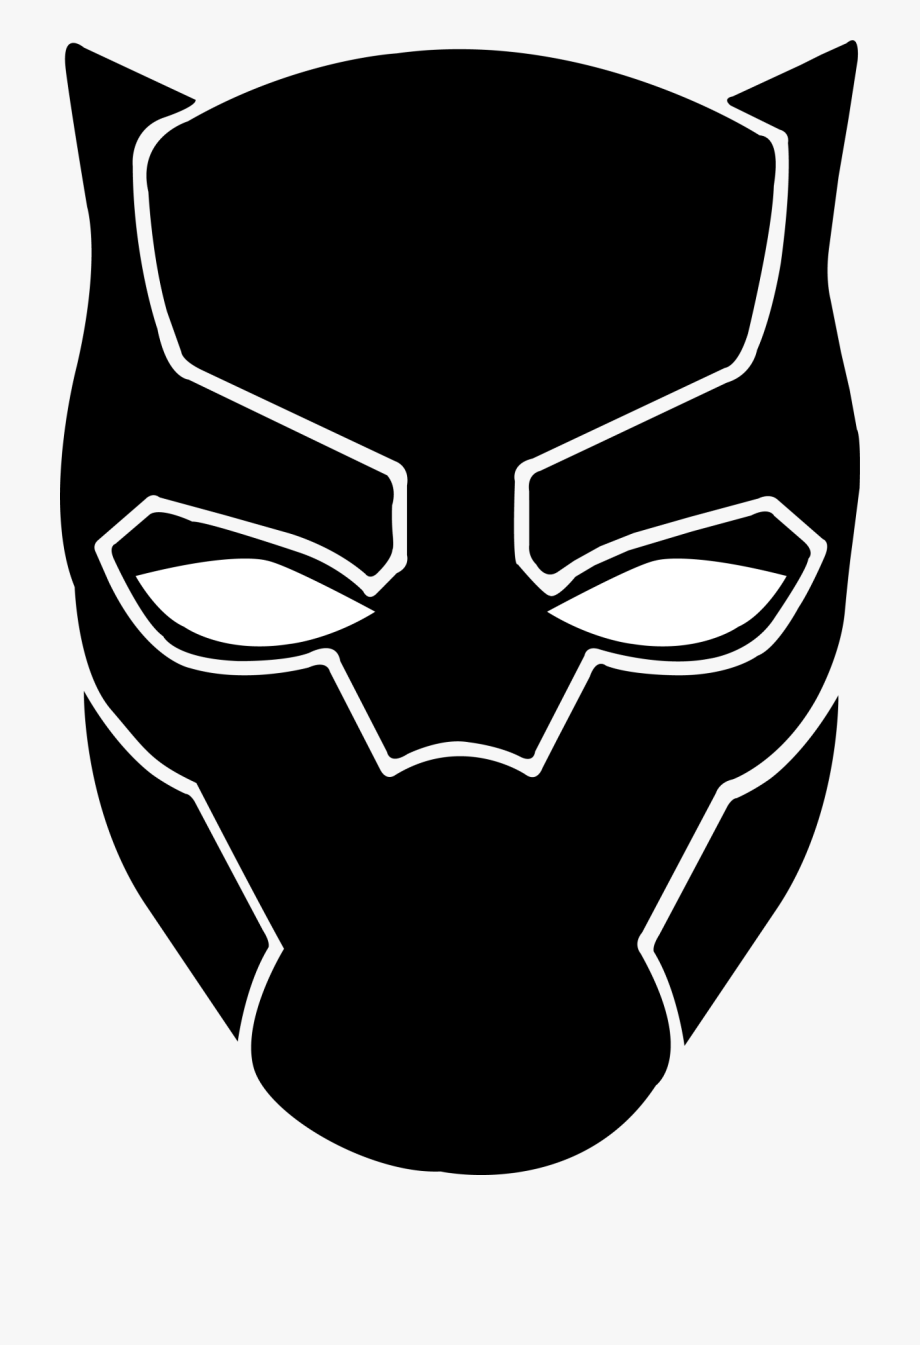 Panther Face Drawing : panther, drawing, Download, Share,